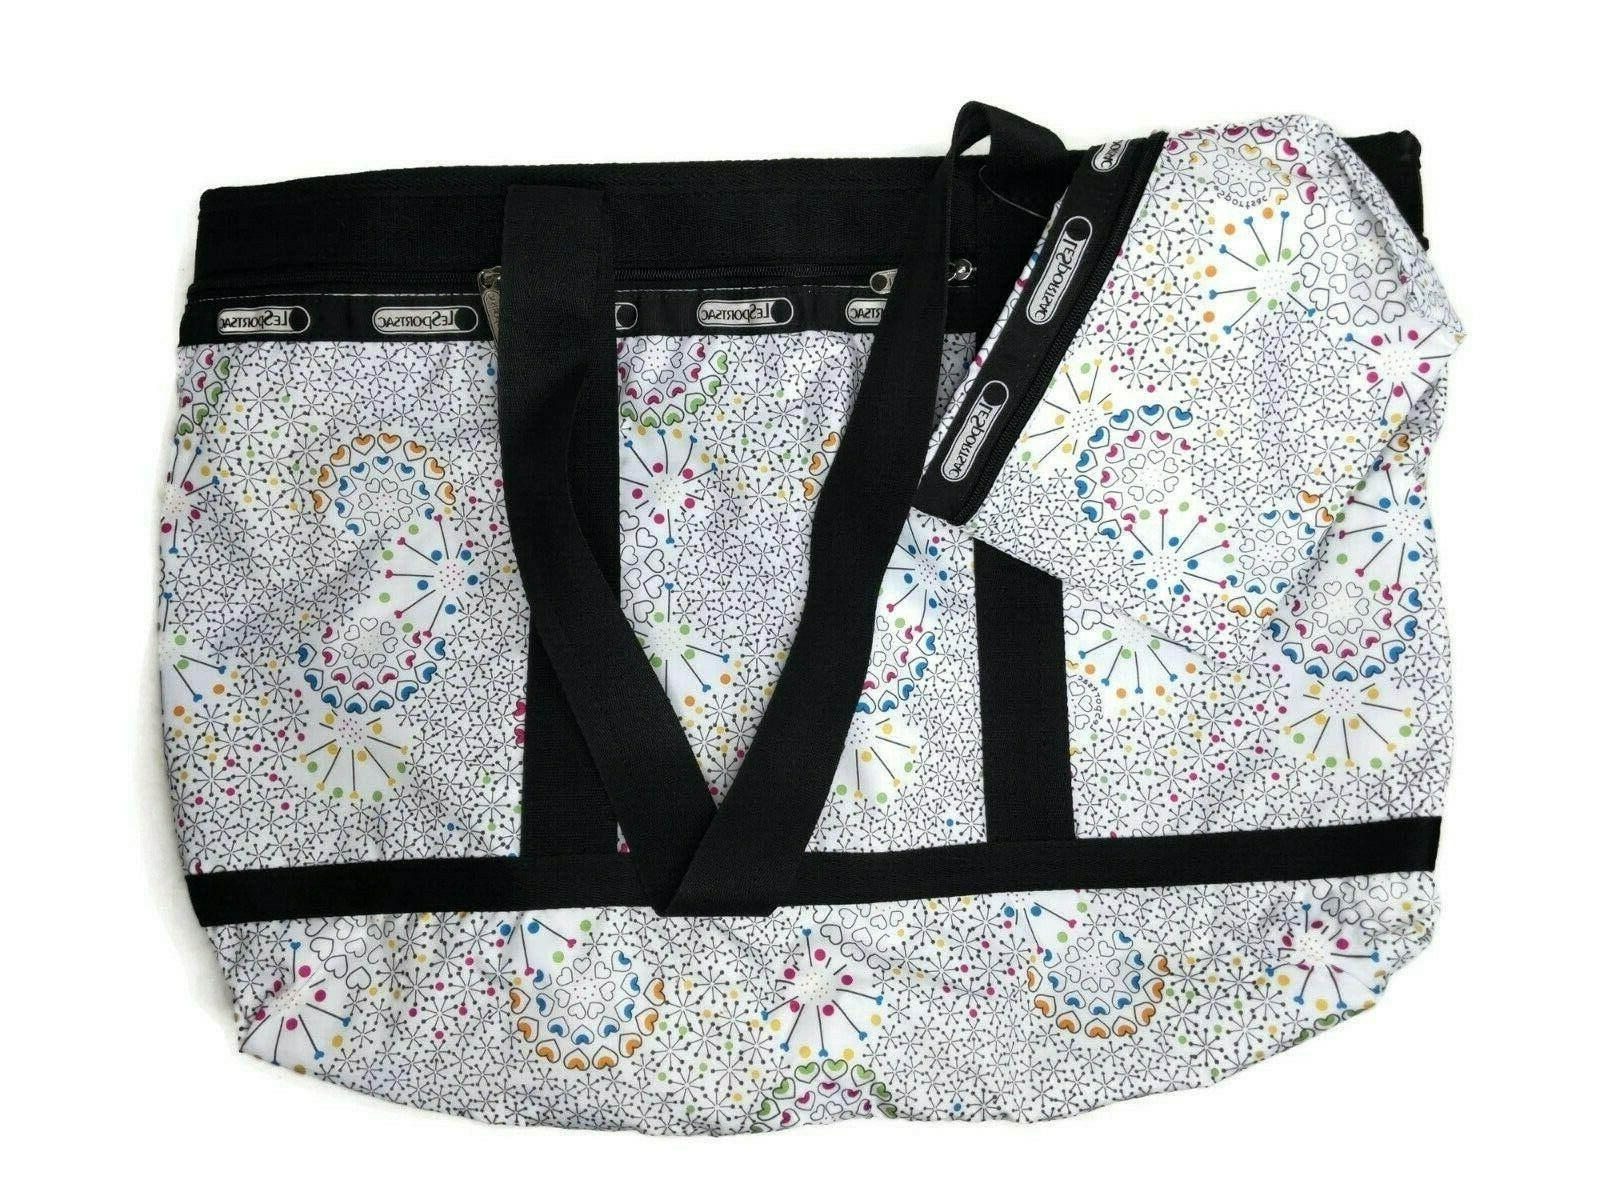 LeSportsac Large Travel Tote + Cosmetic Bag in Hythmic White